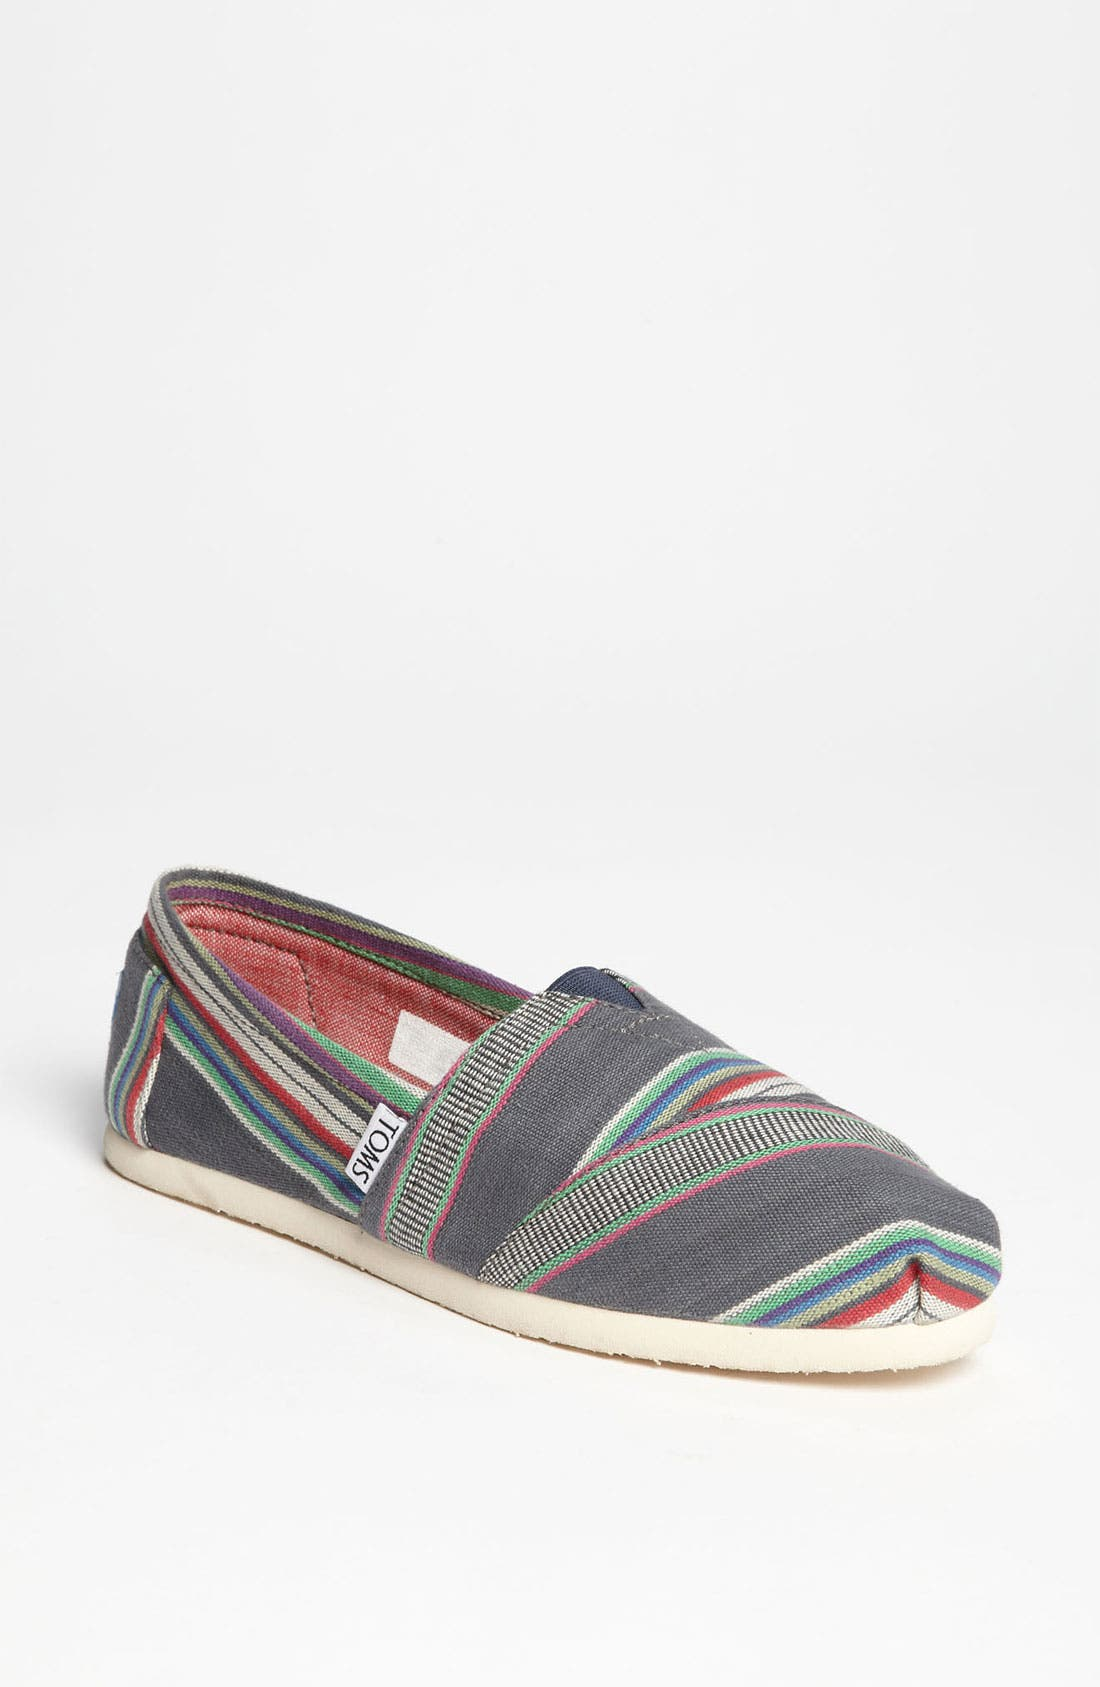 Alternate Image 1 Selected - TOMS 'Classic - Stripe' Slip-On (Women)